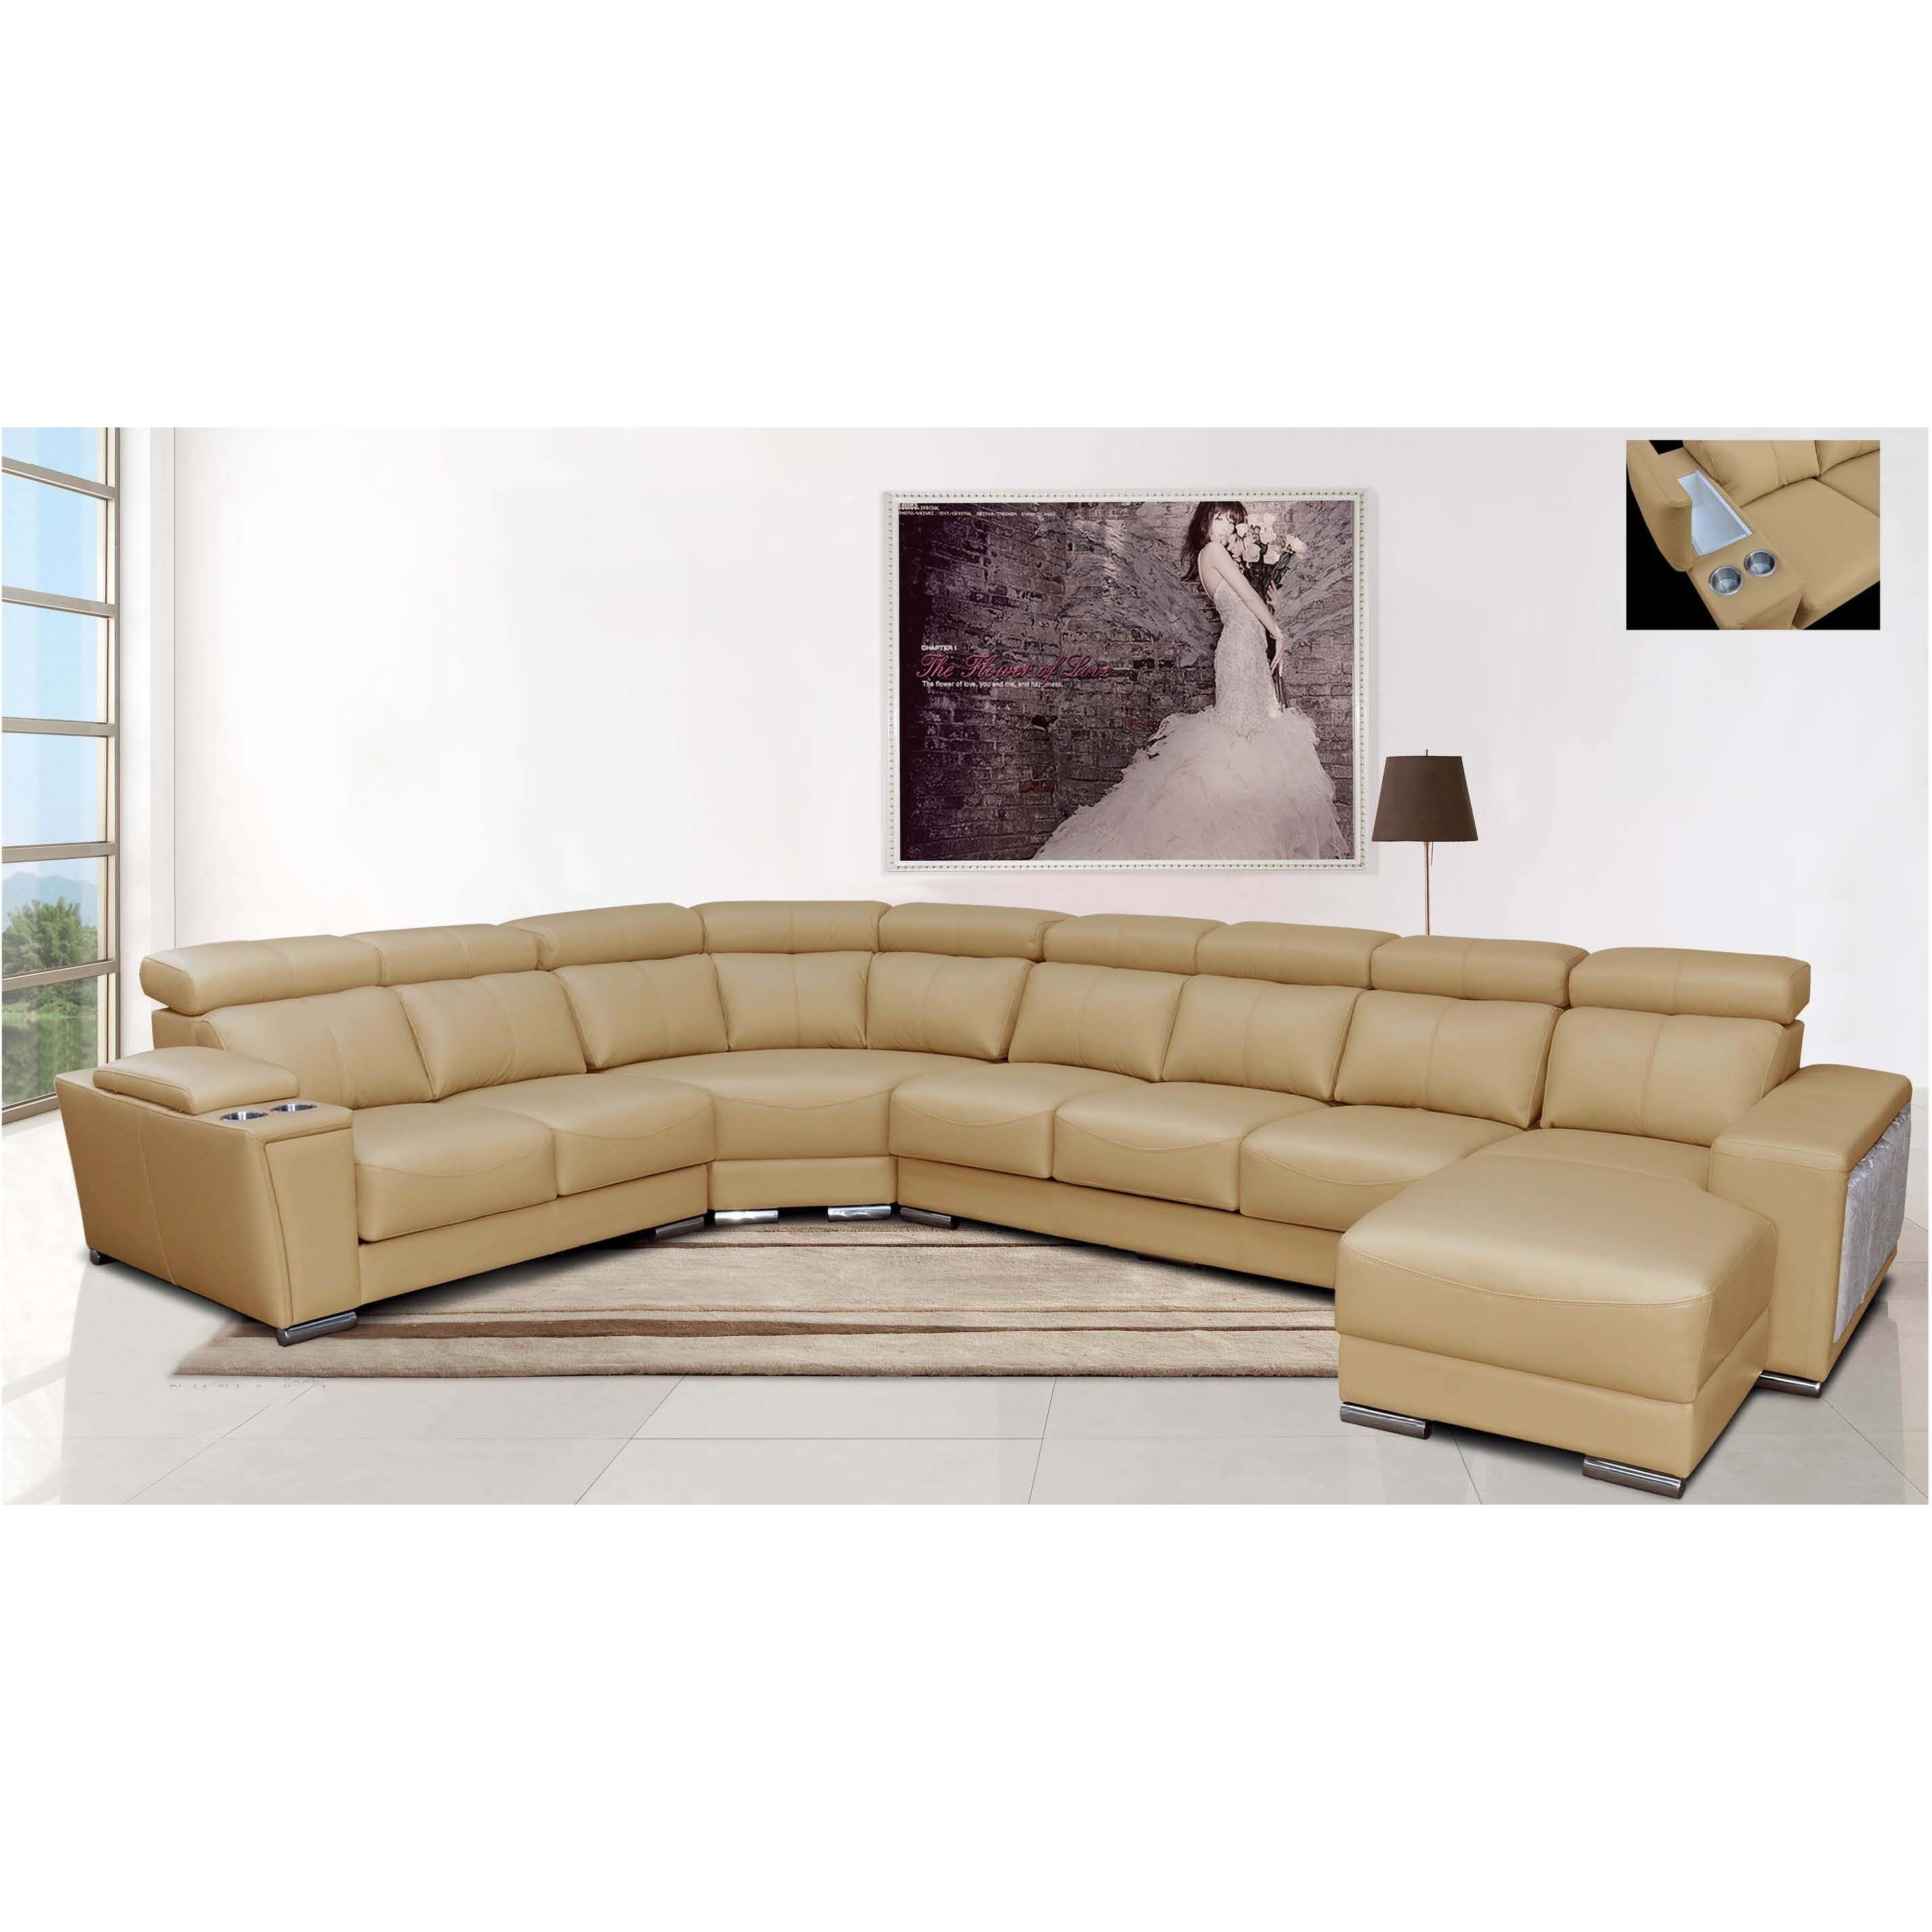 Luca Home Rsf Beige Sectional With Ottomans Rsf Beige Sectional W  # Muebles Seccionales En Miami